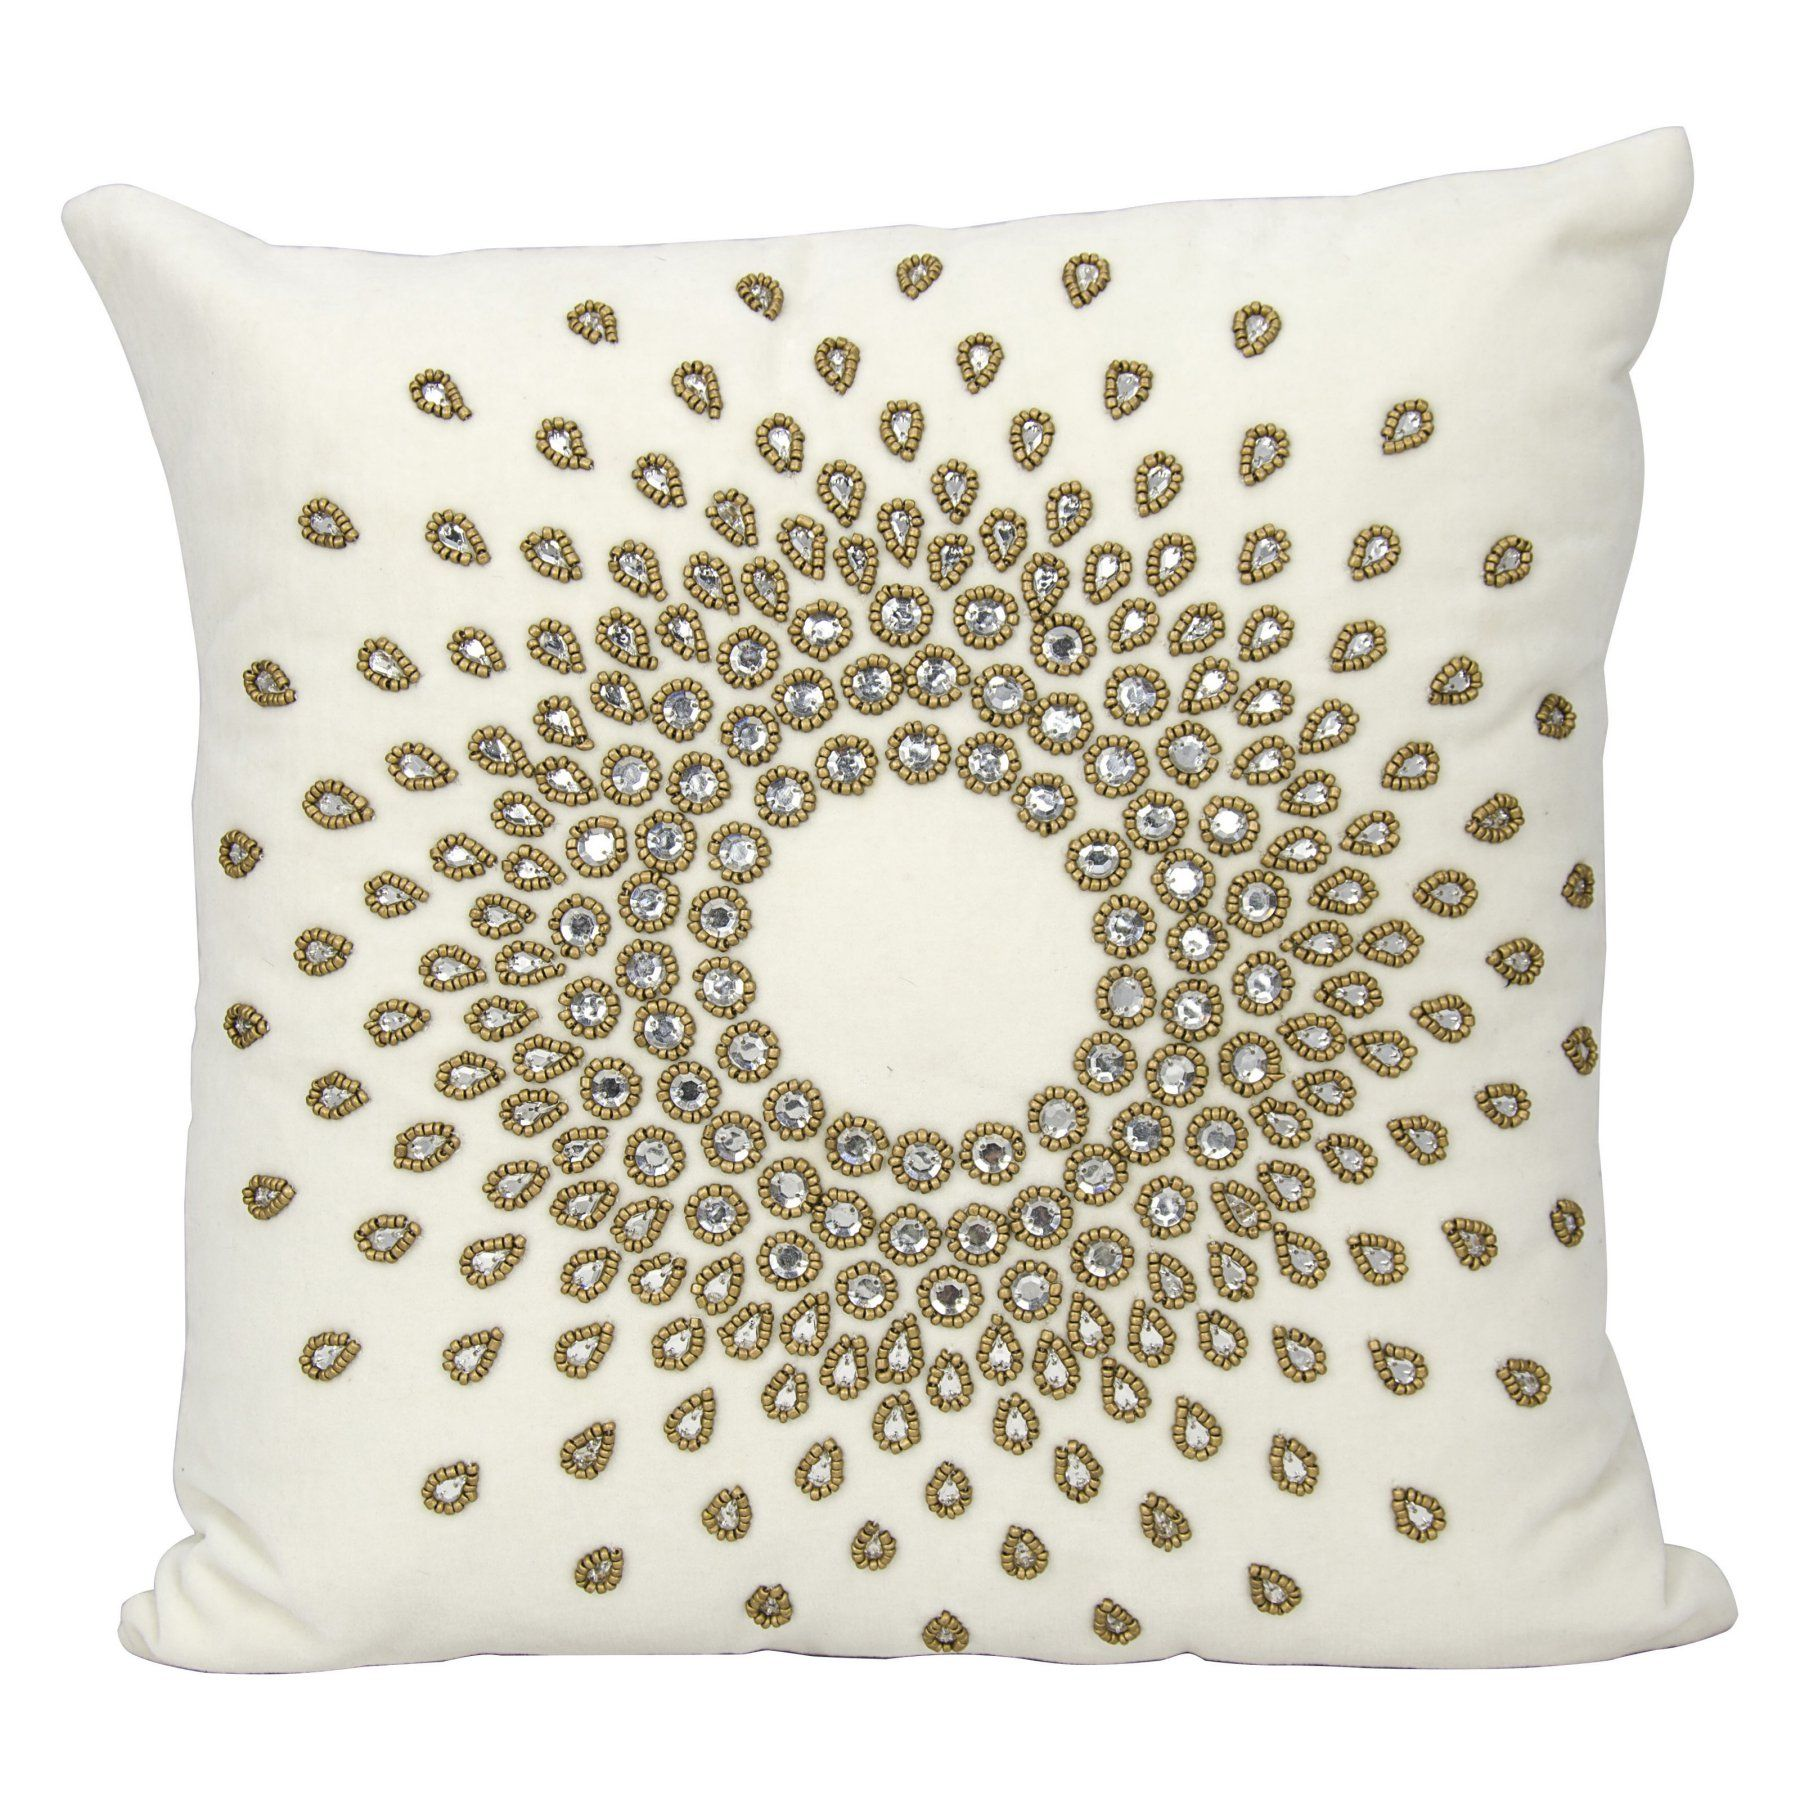 Couture Luster Pillow A0140 - 798019031756